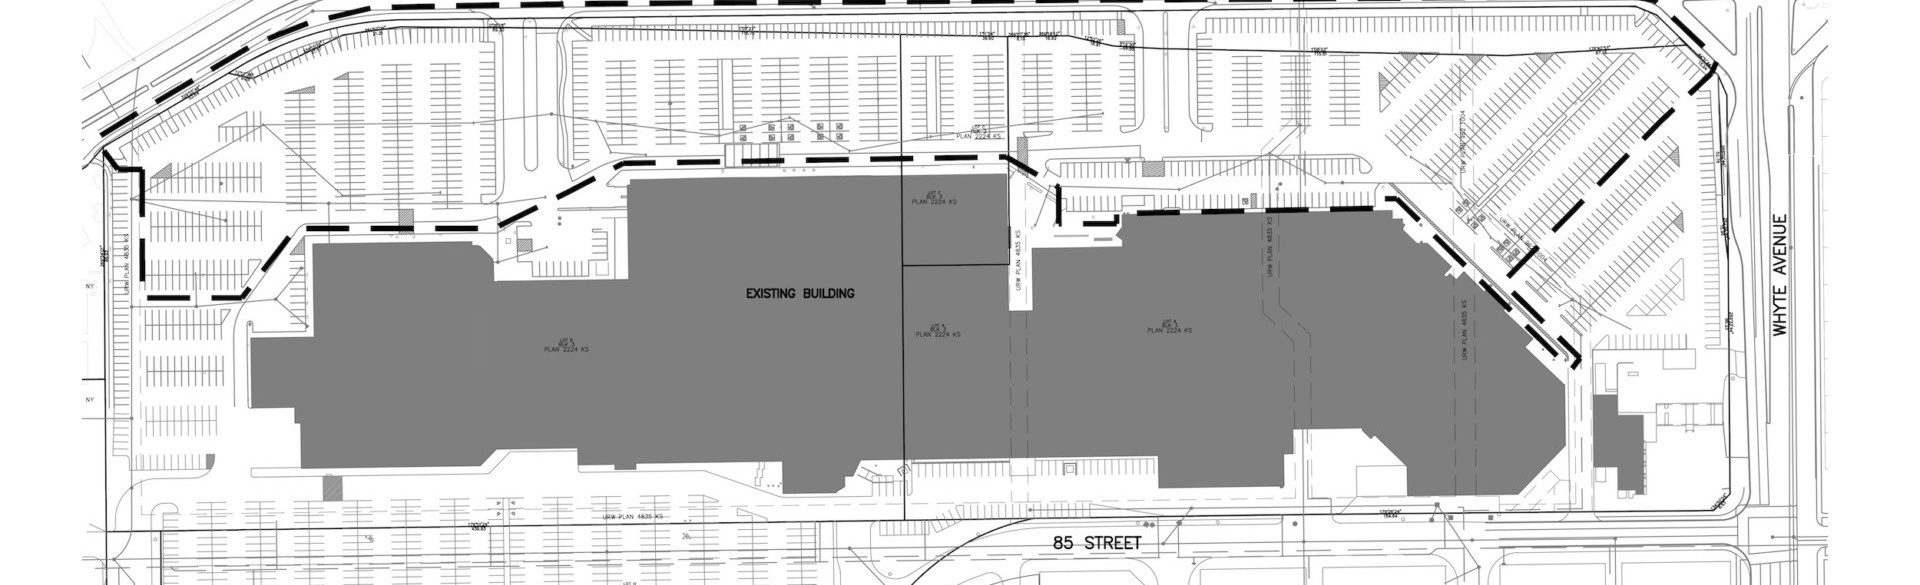 15-702 - OVERALL SITE PLAN-ONSITE A-1